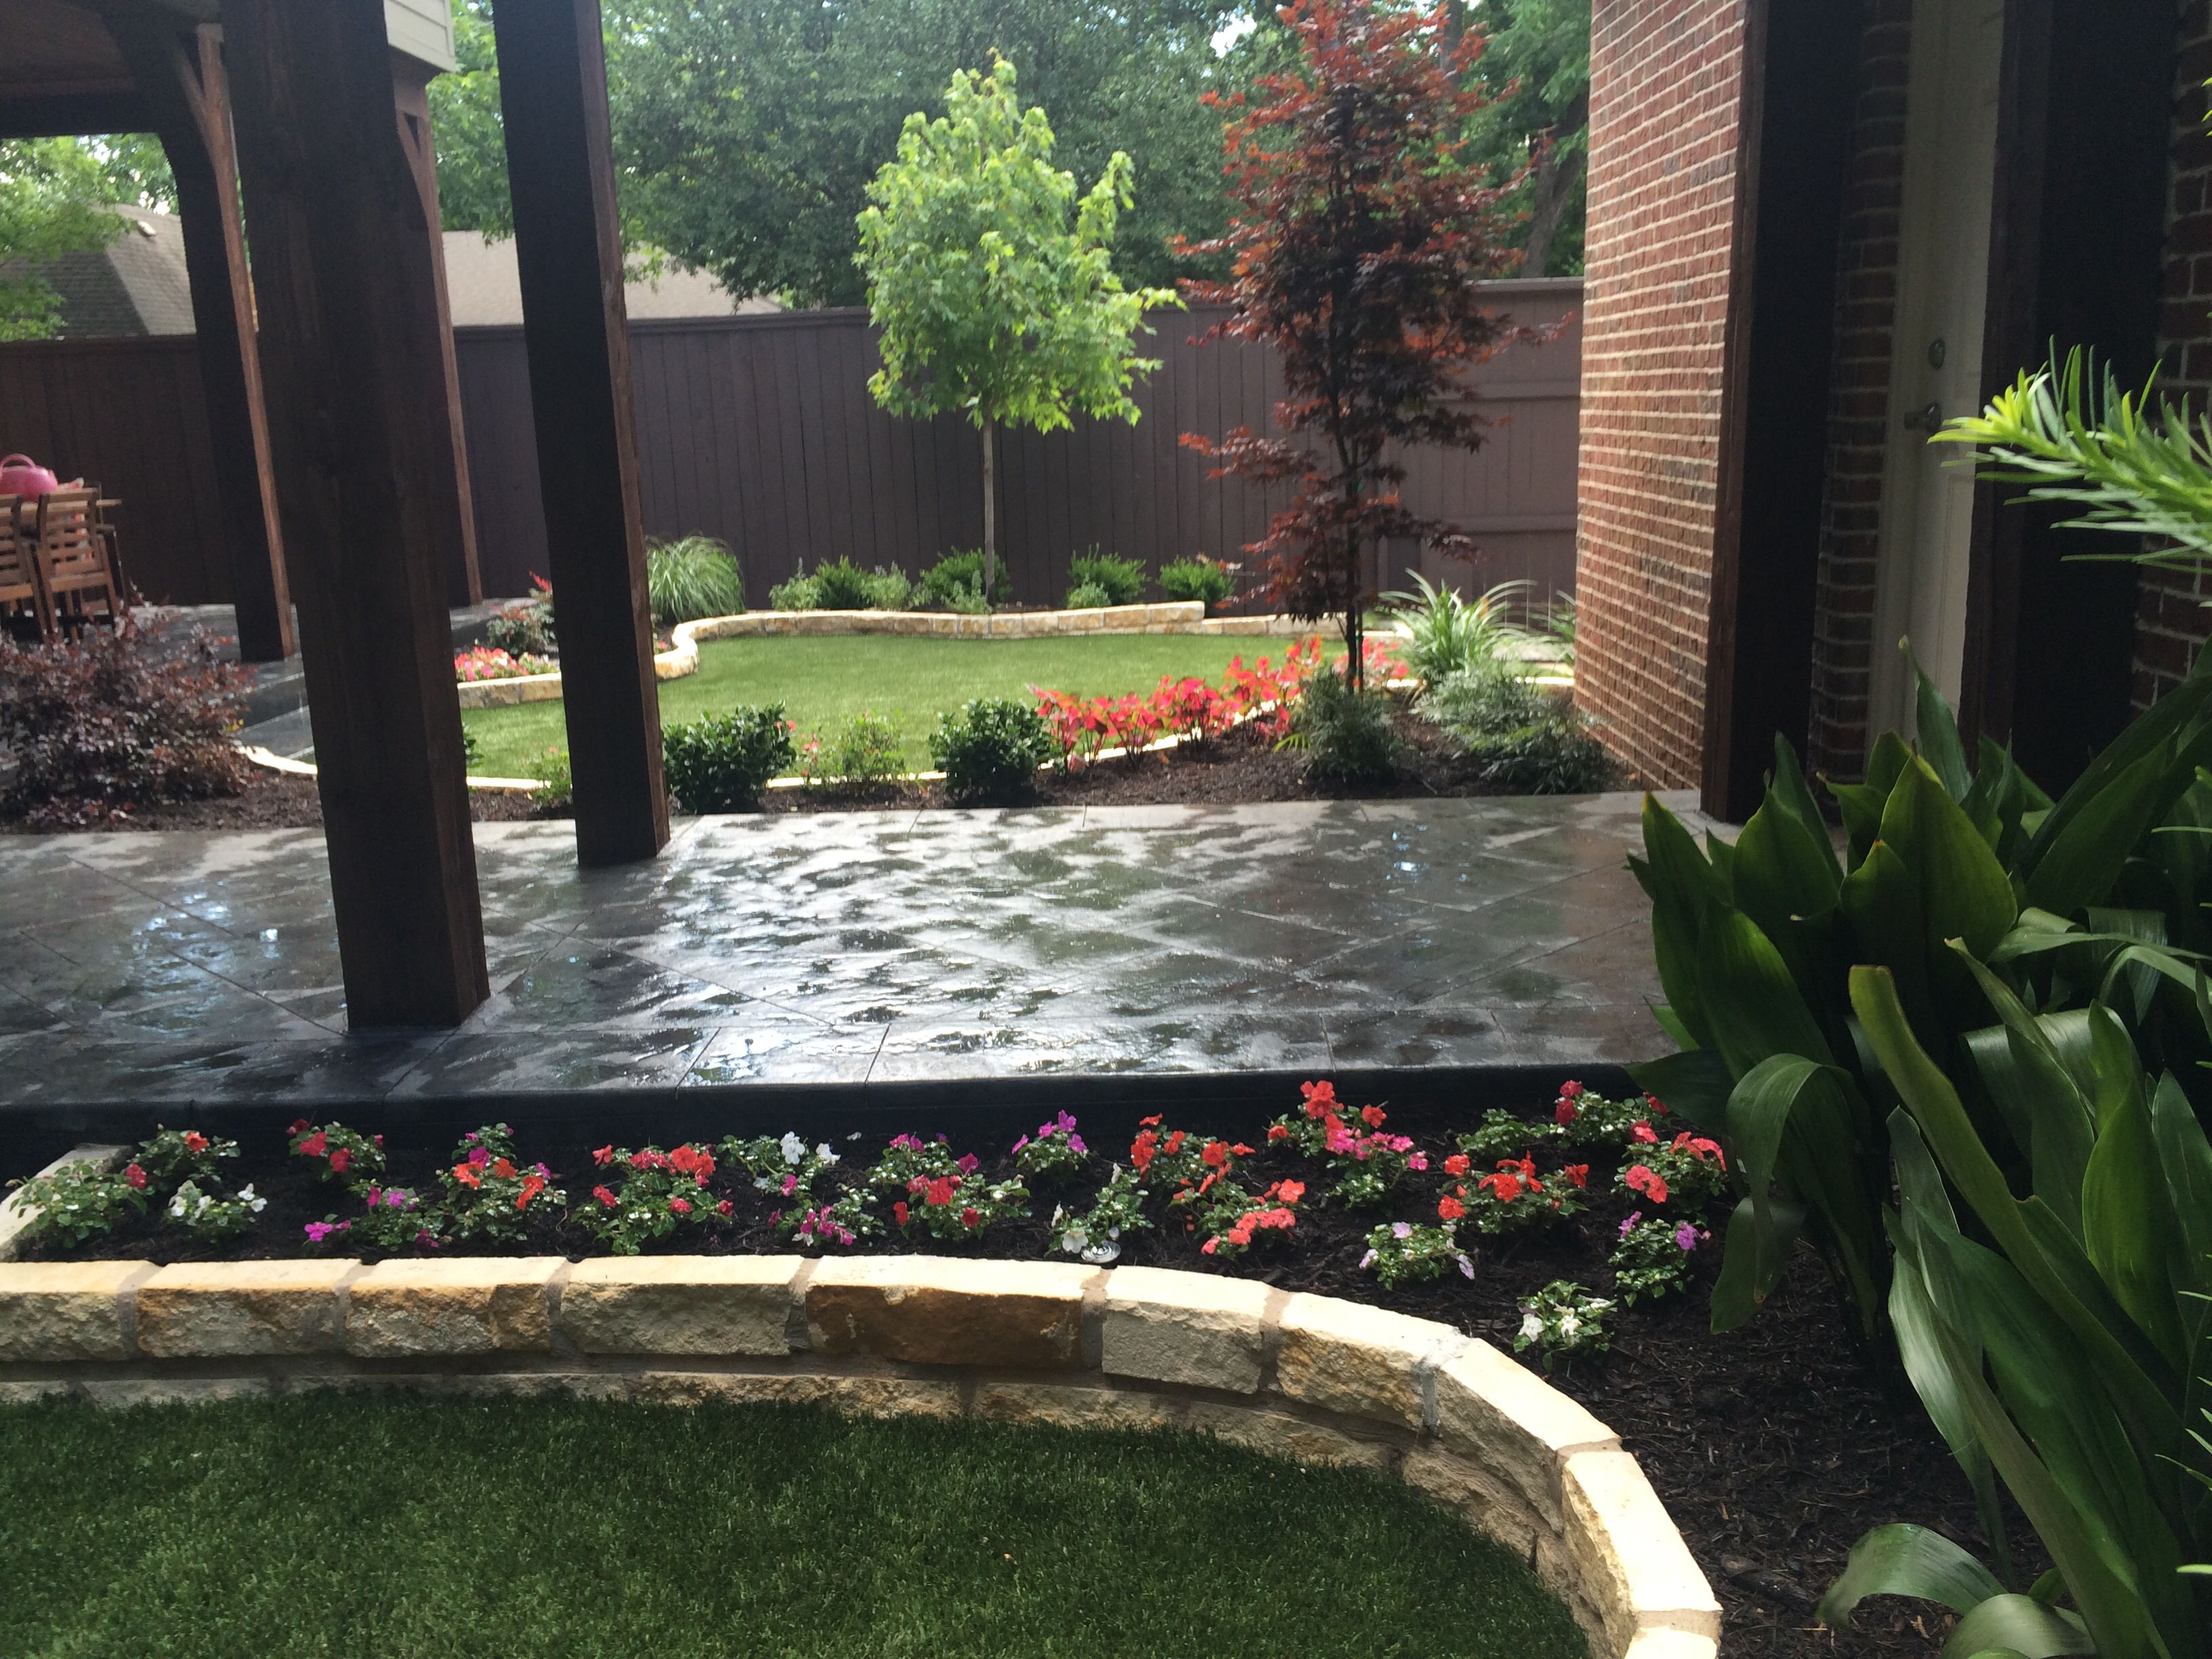 Full Install By Dallas Landscape Lighting Stone Edging Landscaping Artificial Turf Grass Artificial Turf Grass Stone Edging Turf Grass